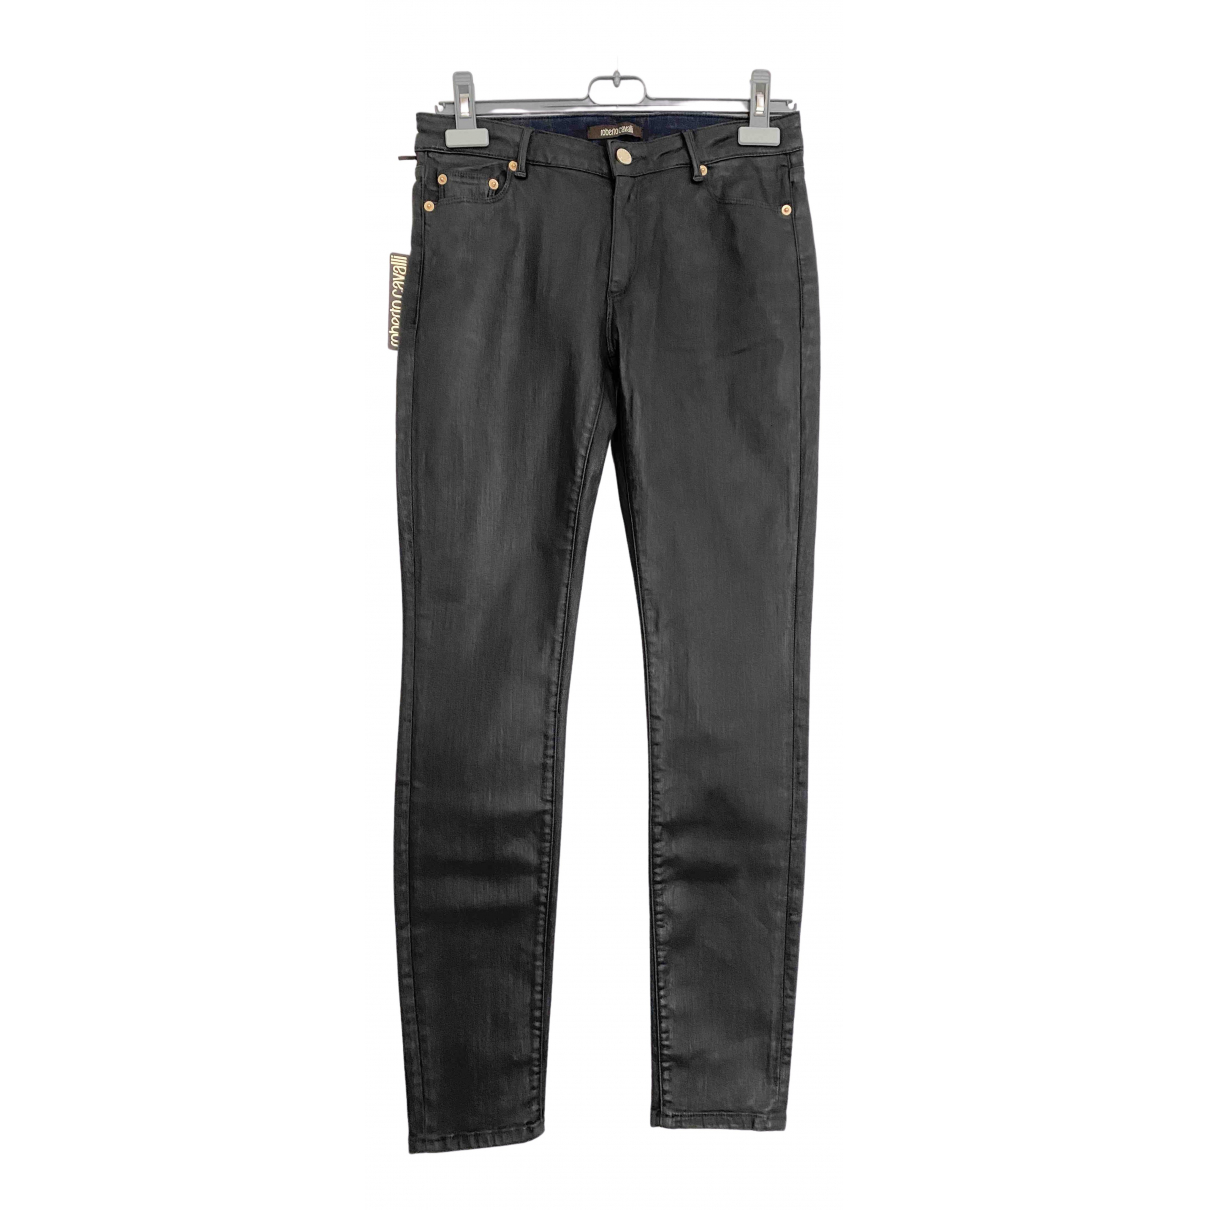 Roberto Cavalli \N Black Cotton Jeans for Women 38 FR